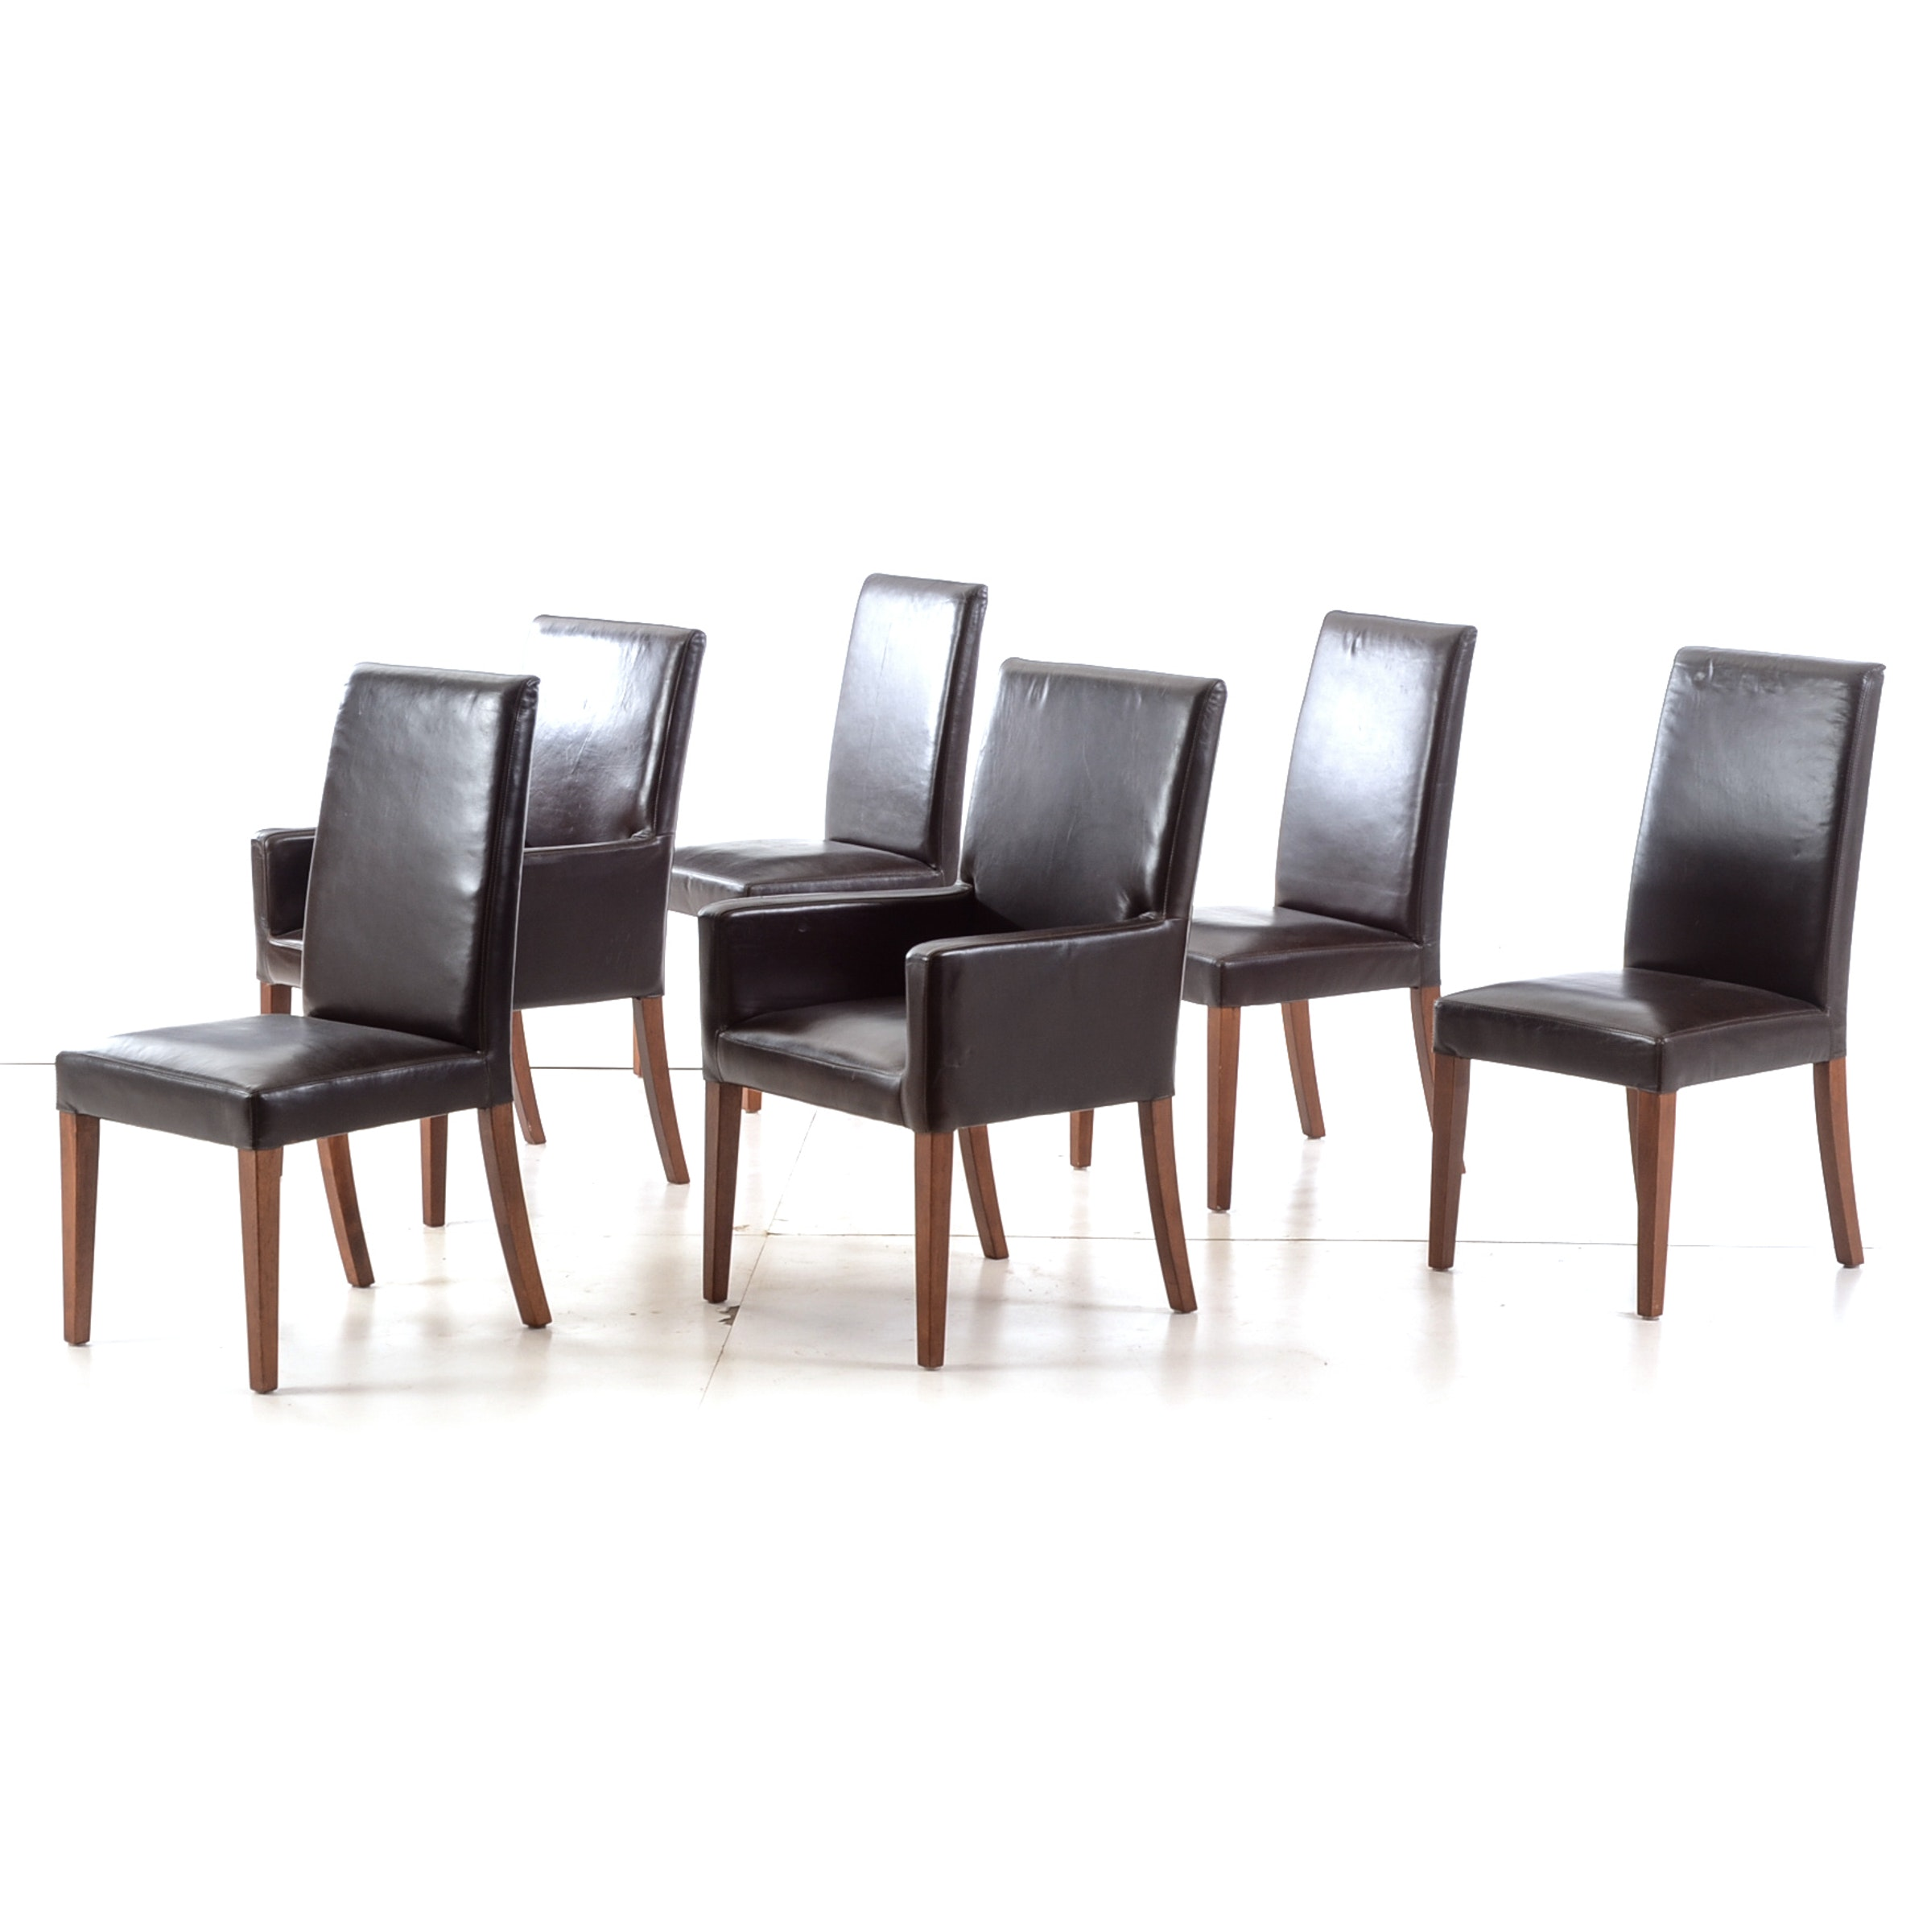 YANKED Set of Leather Upholstered Dining Chairs